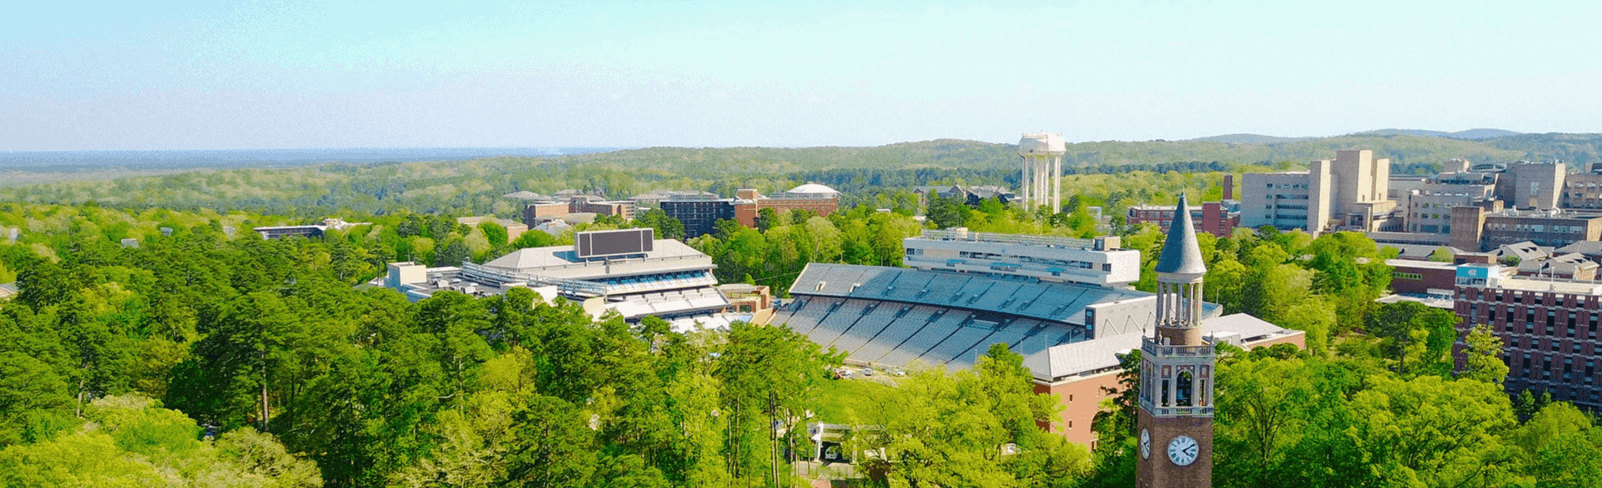 UNC Aerial.png